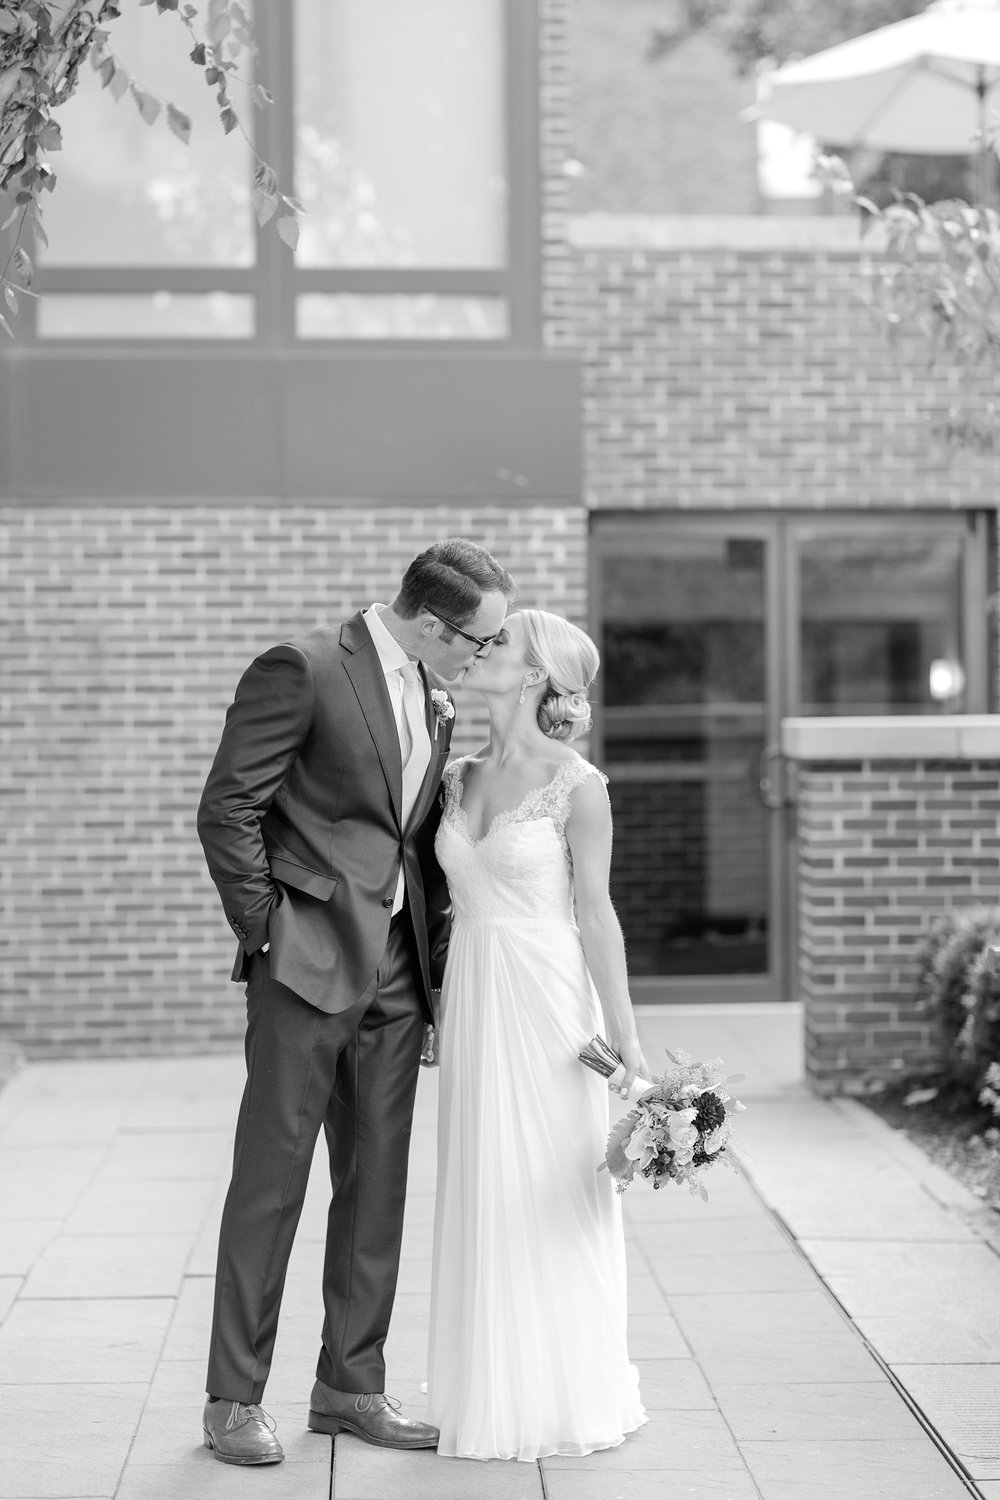 McAnelly 3. Bride & Groom Portraits-186_anna grace photography georgetown virginia wedding photographer ritz carlton wedding photo.jpg